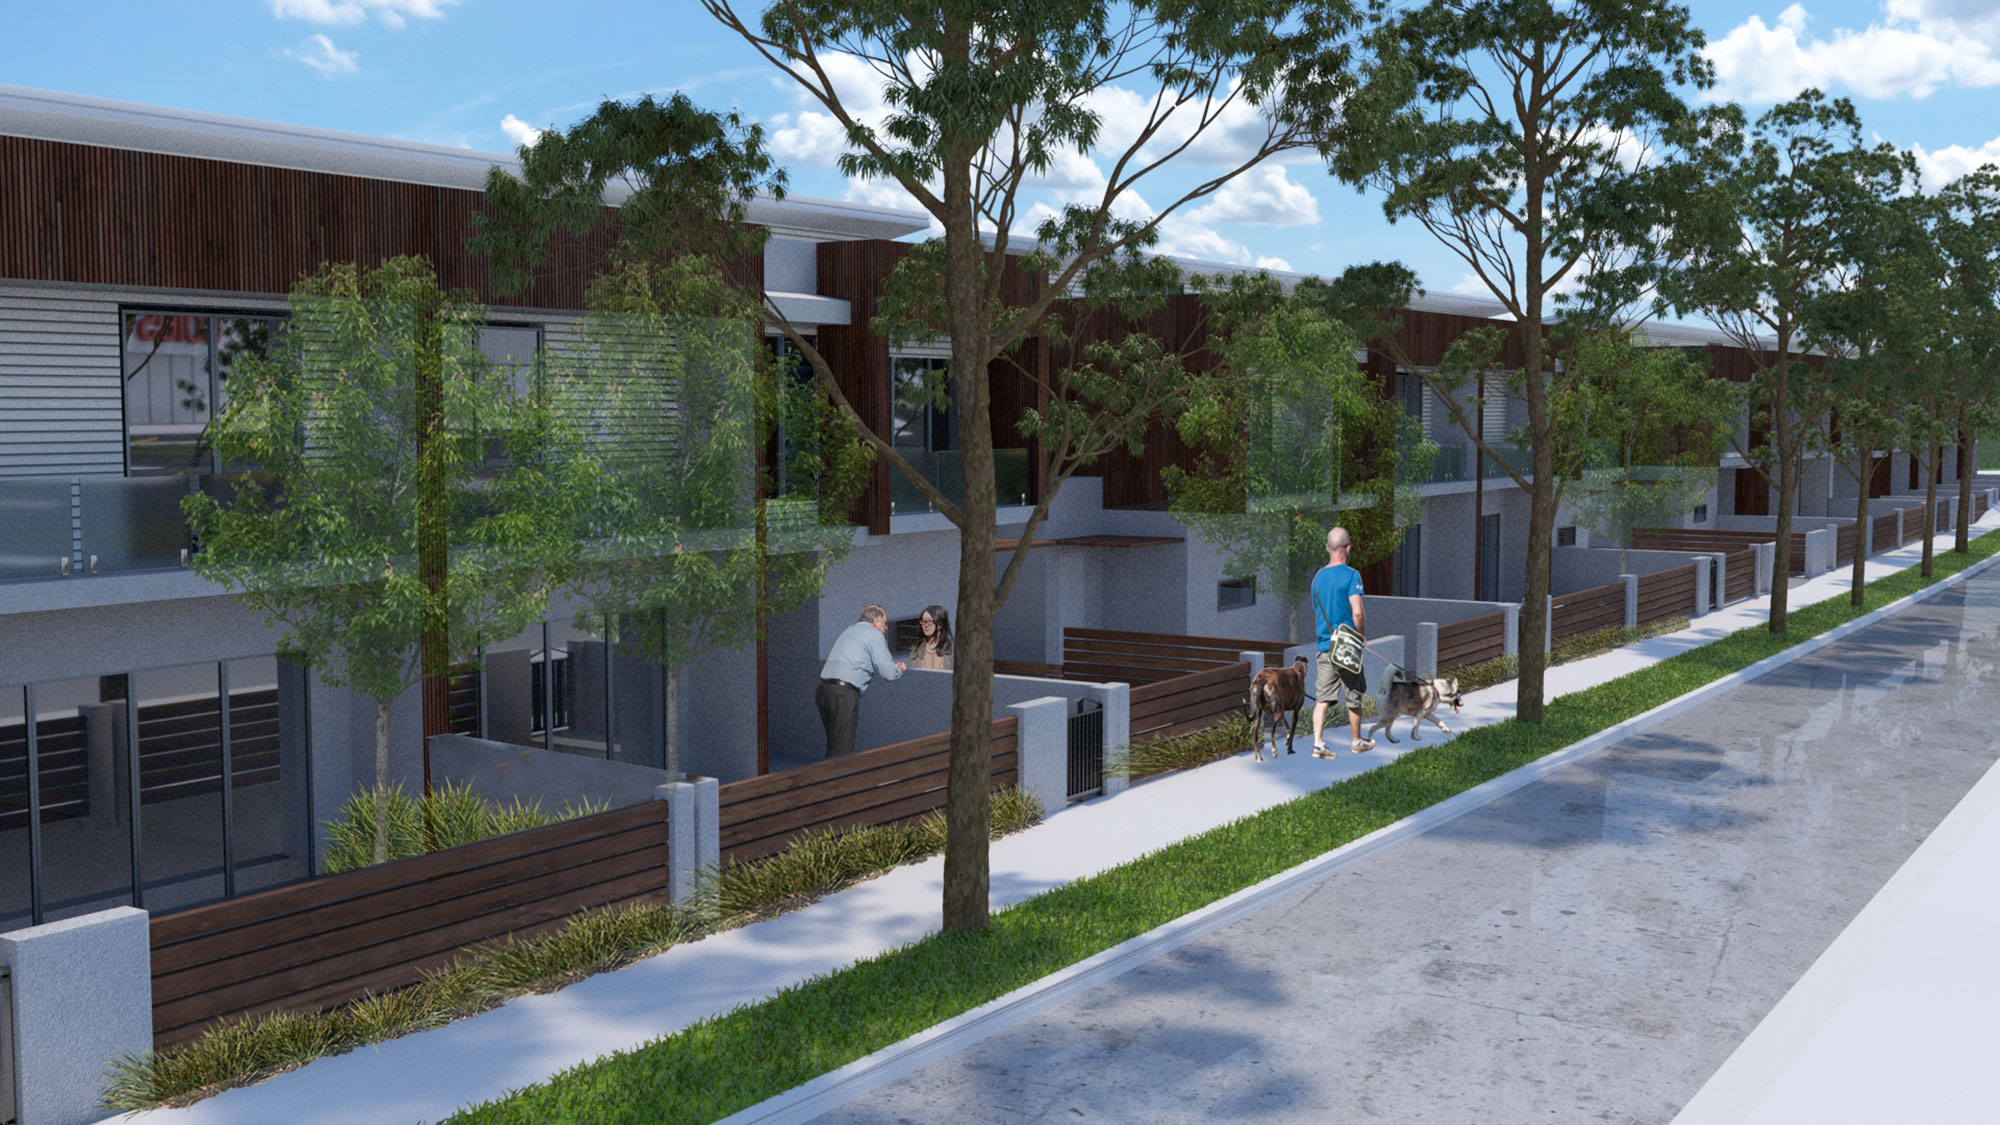 Bonnells Bay Architectural Development Proposal